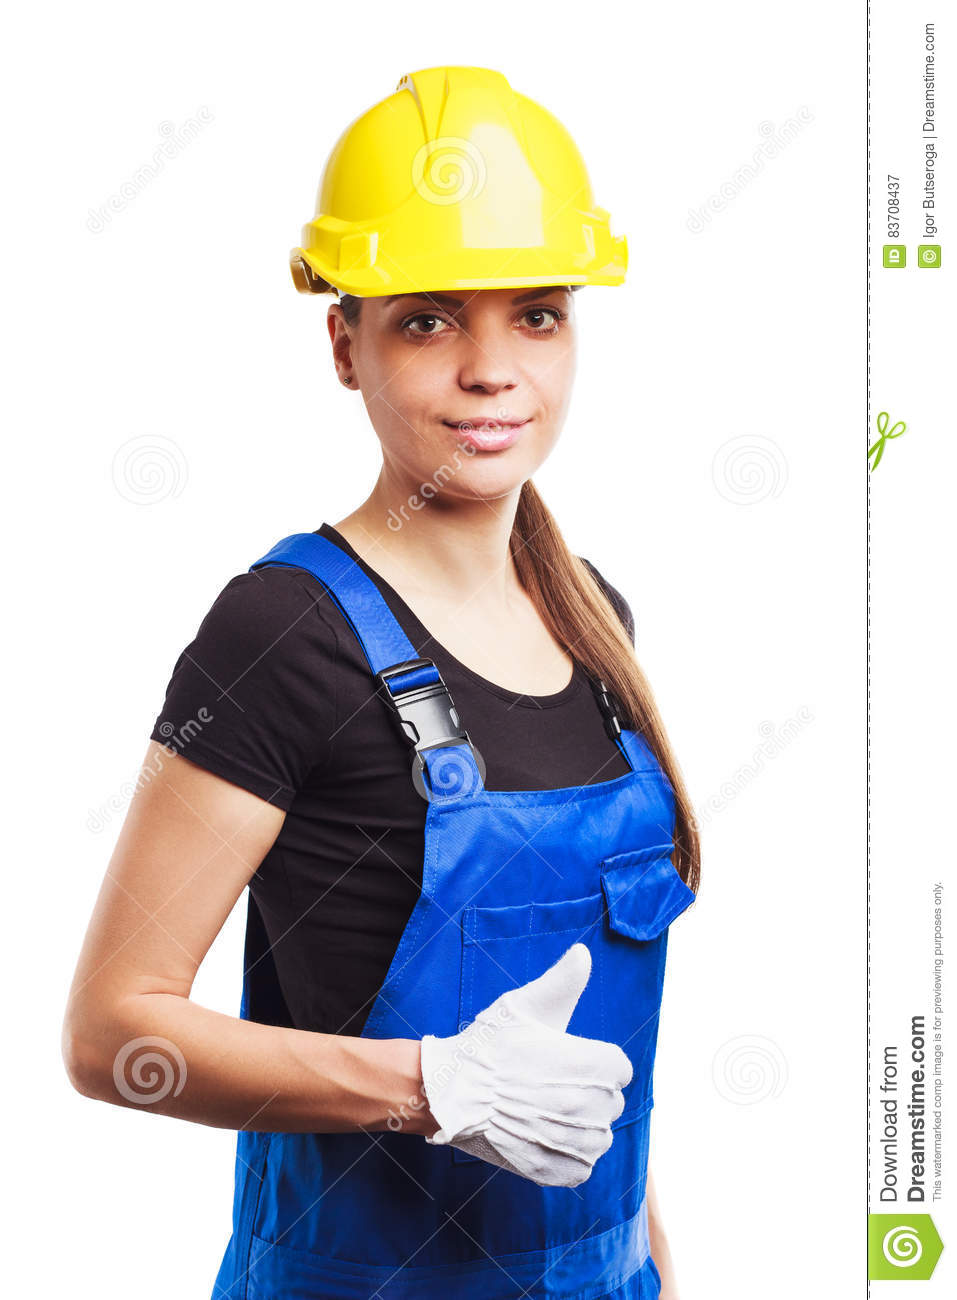 Woman Builder In The Uniform And Construction Gloves Stock Photo